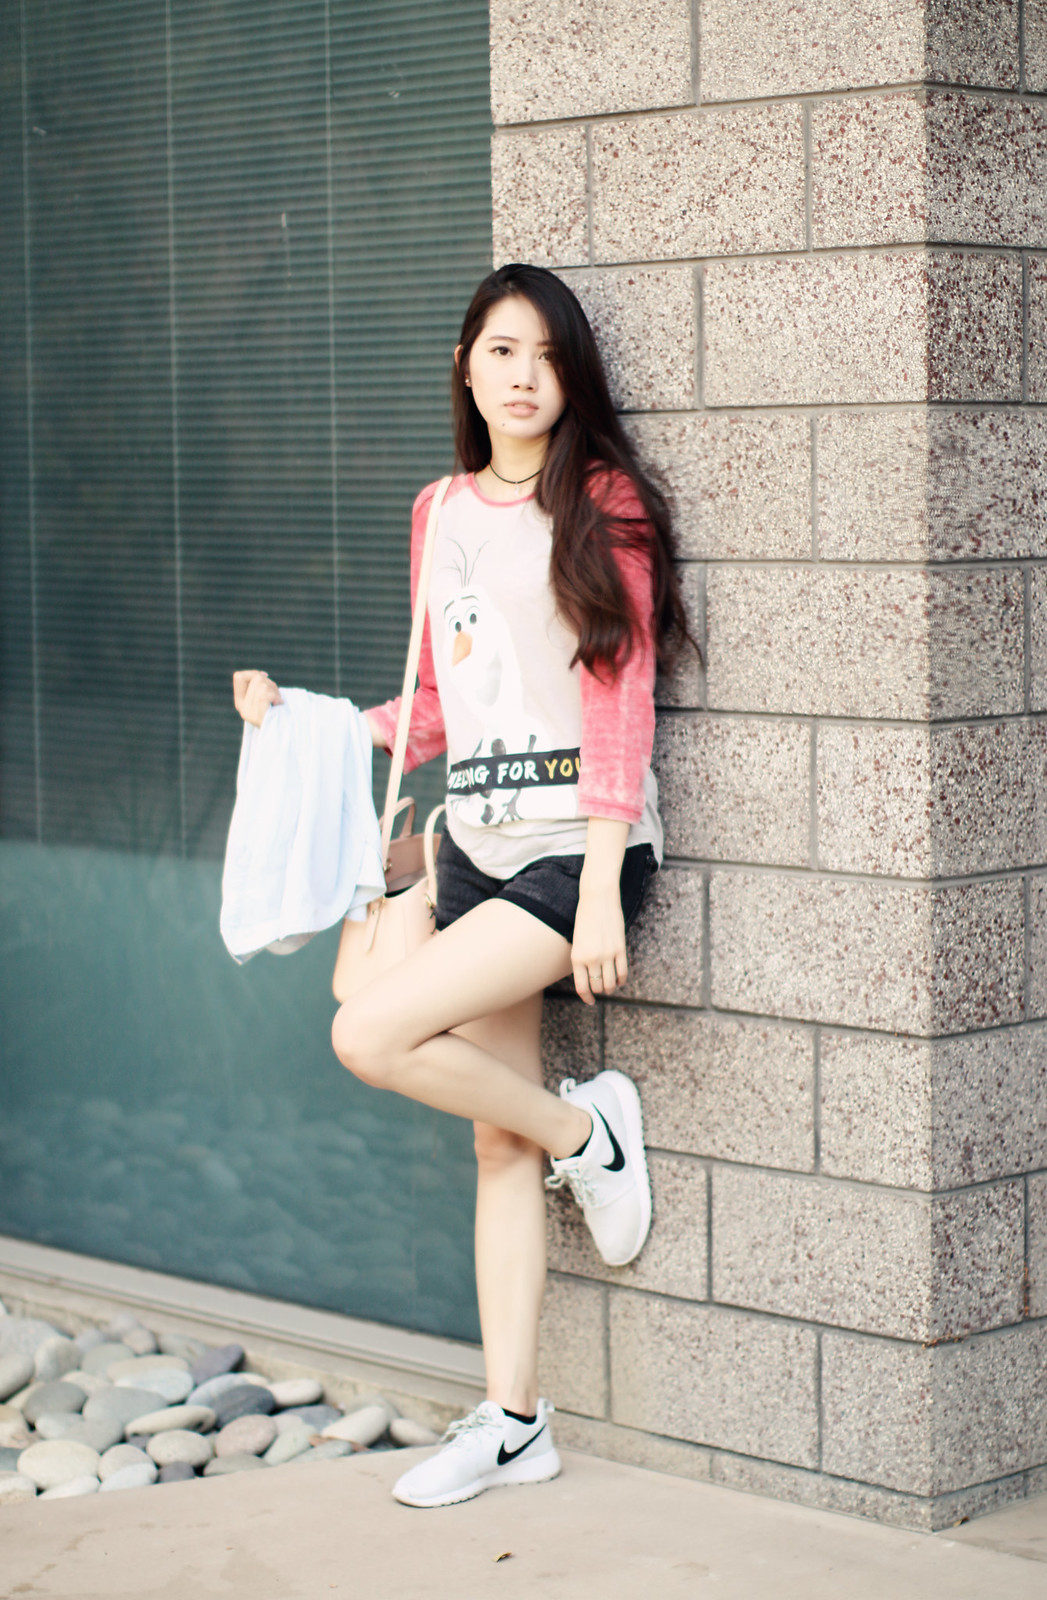 0201-disney-graphic-tee-sporty-chic-athleisure-summer-style-asian-fashion本